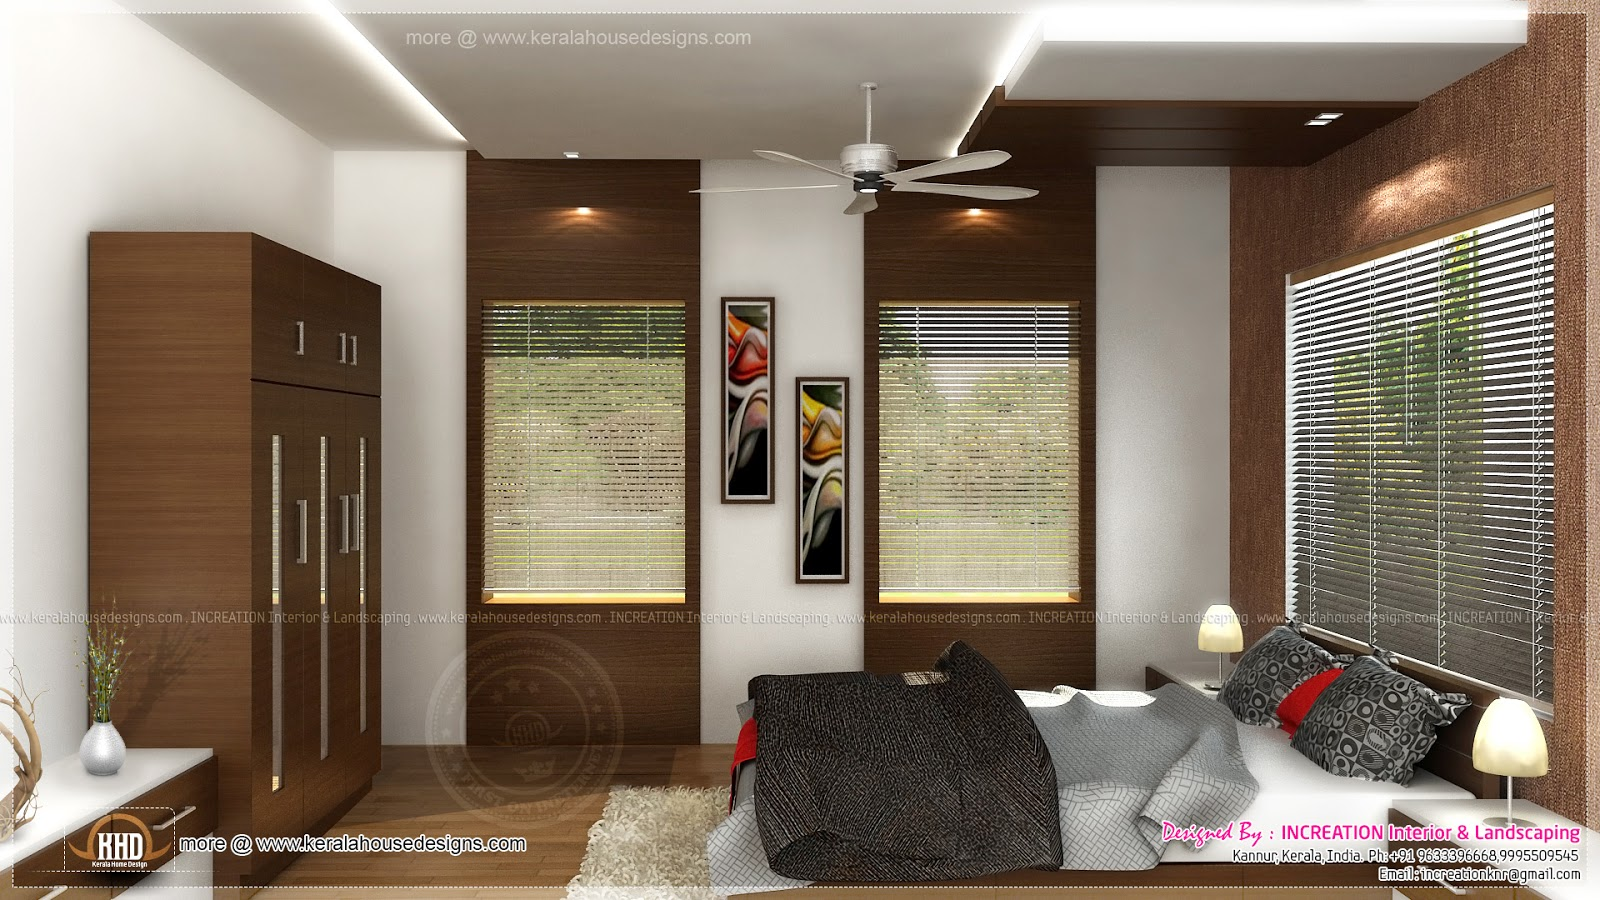 Interior designs from kannur kerala home kerala plans for House interior design nagercoil